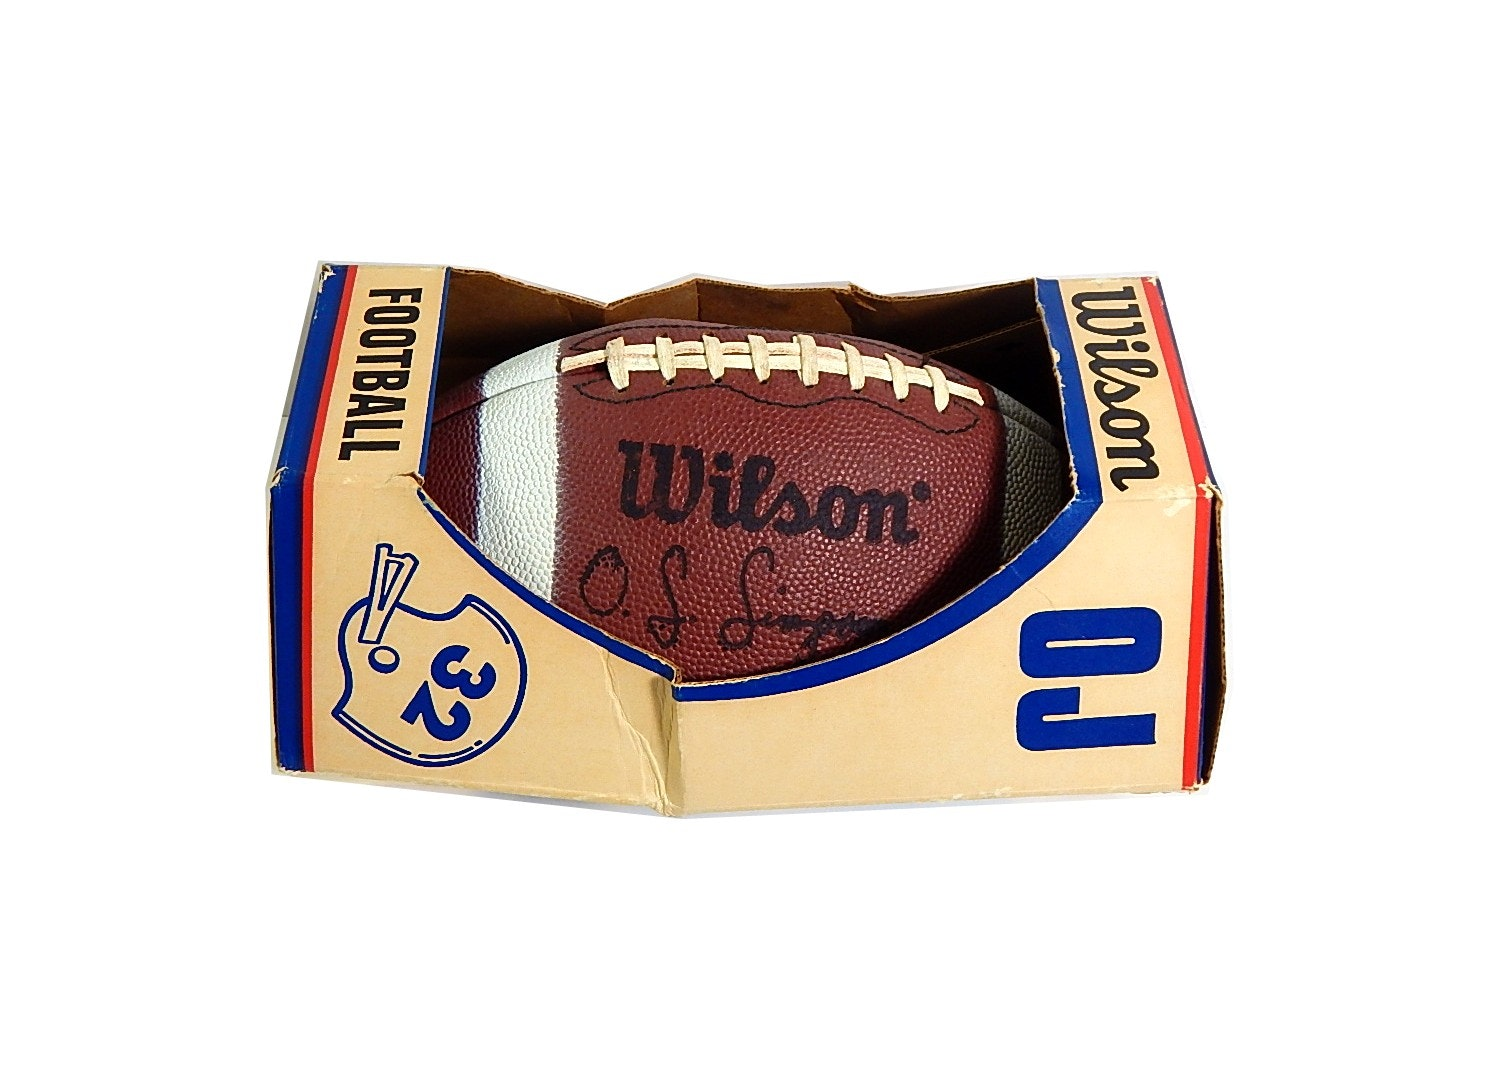 Vintage O.J. Simpson Wilson Football - Signed by Ken Anderson